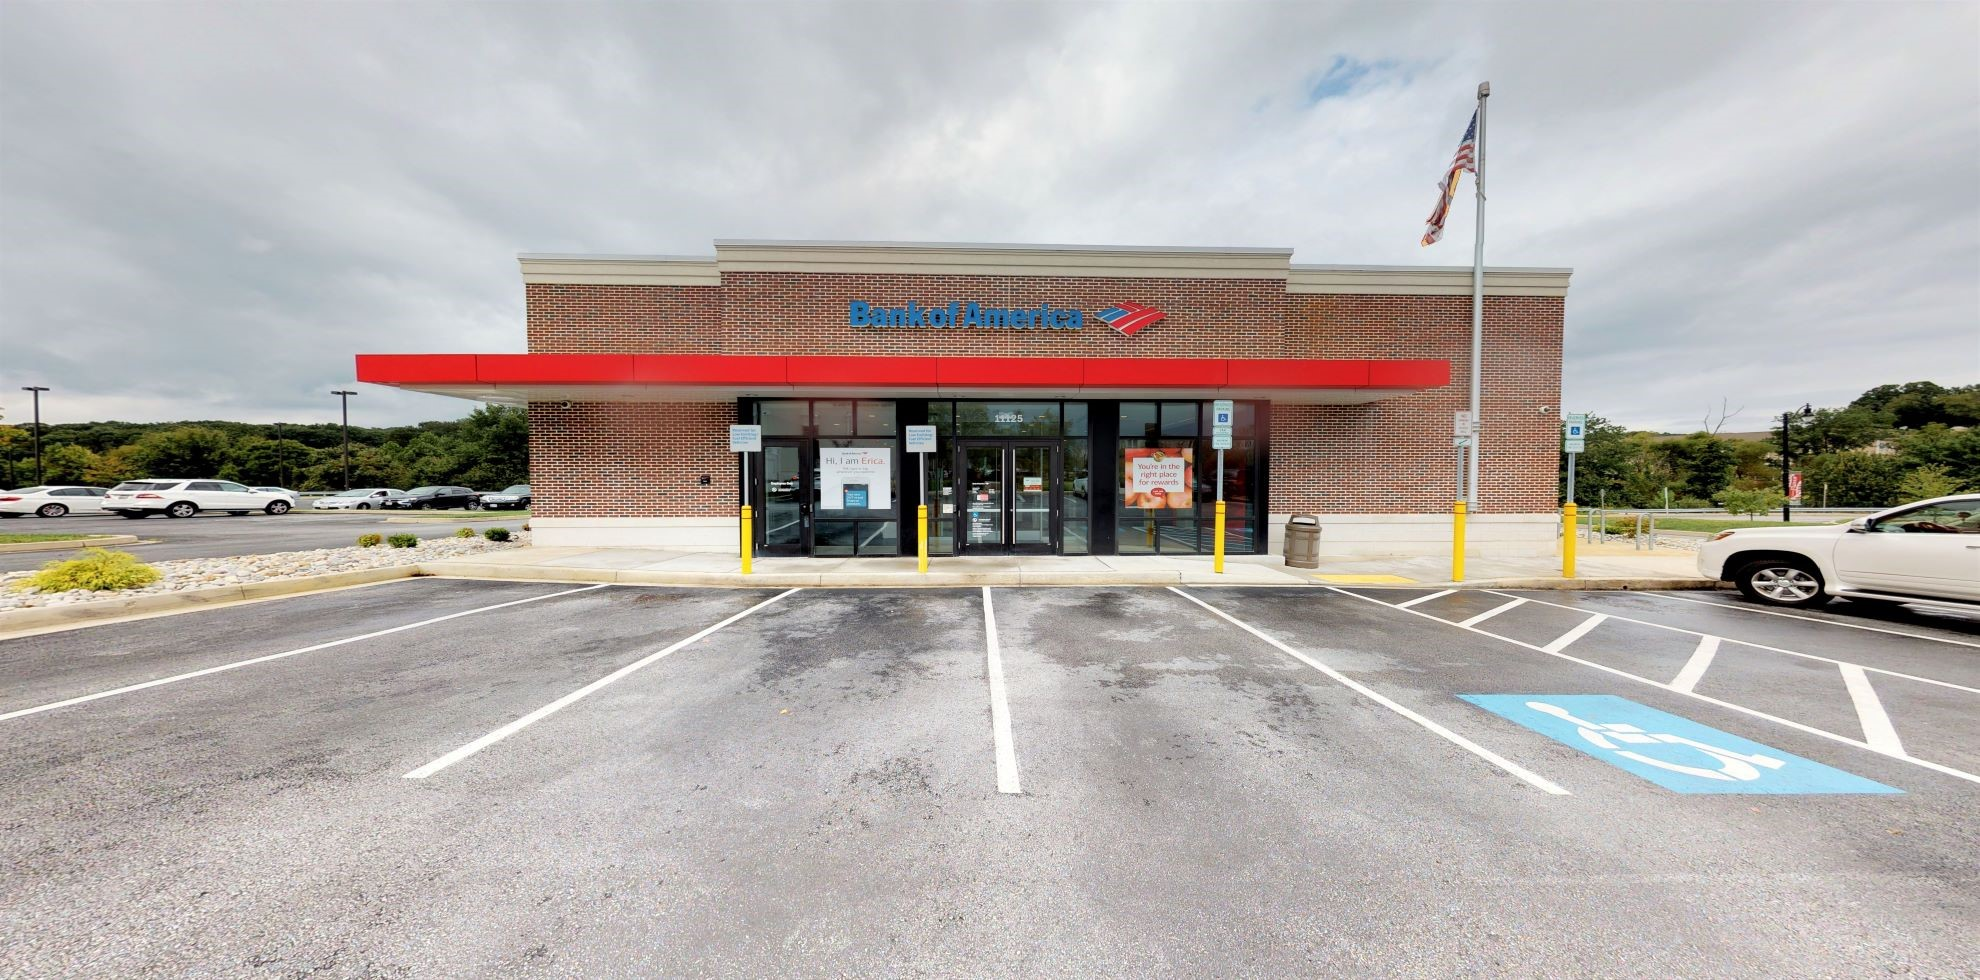 Bank of America financial center with drive-thru ATM | 11125 Resort Rd, Ellicott City, MD 21042